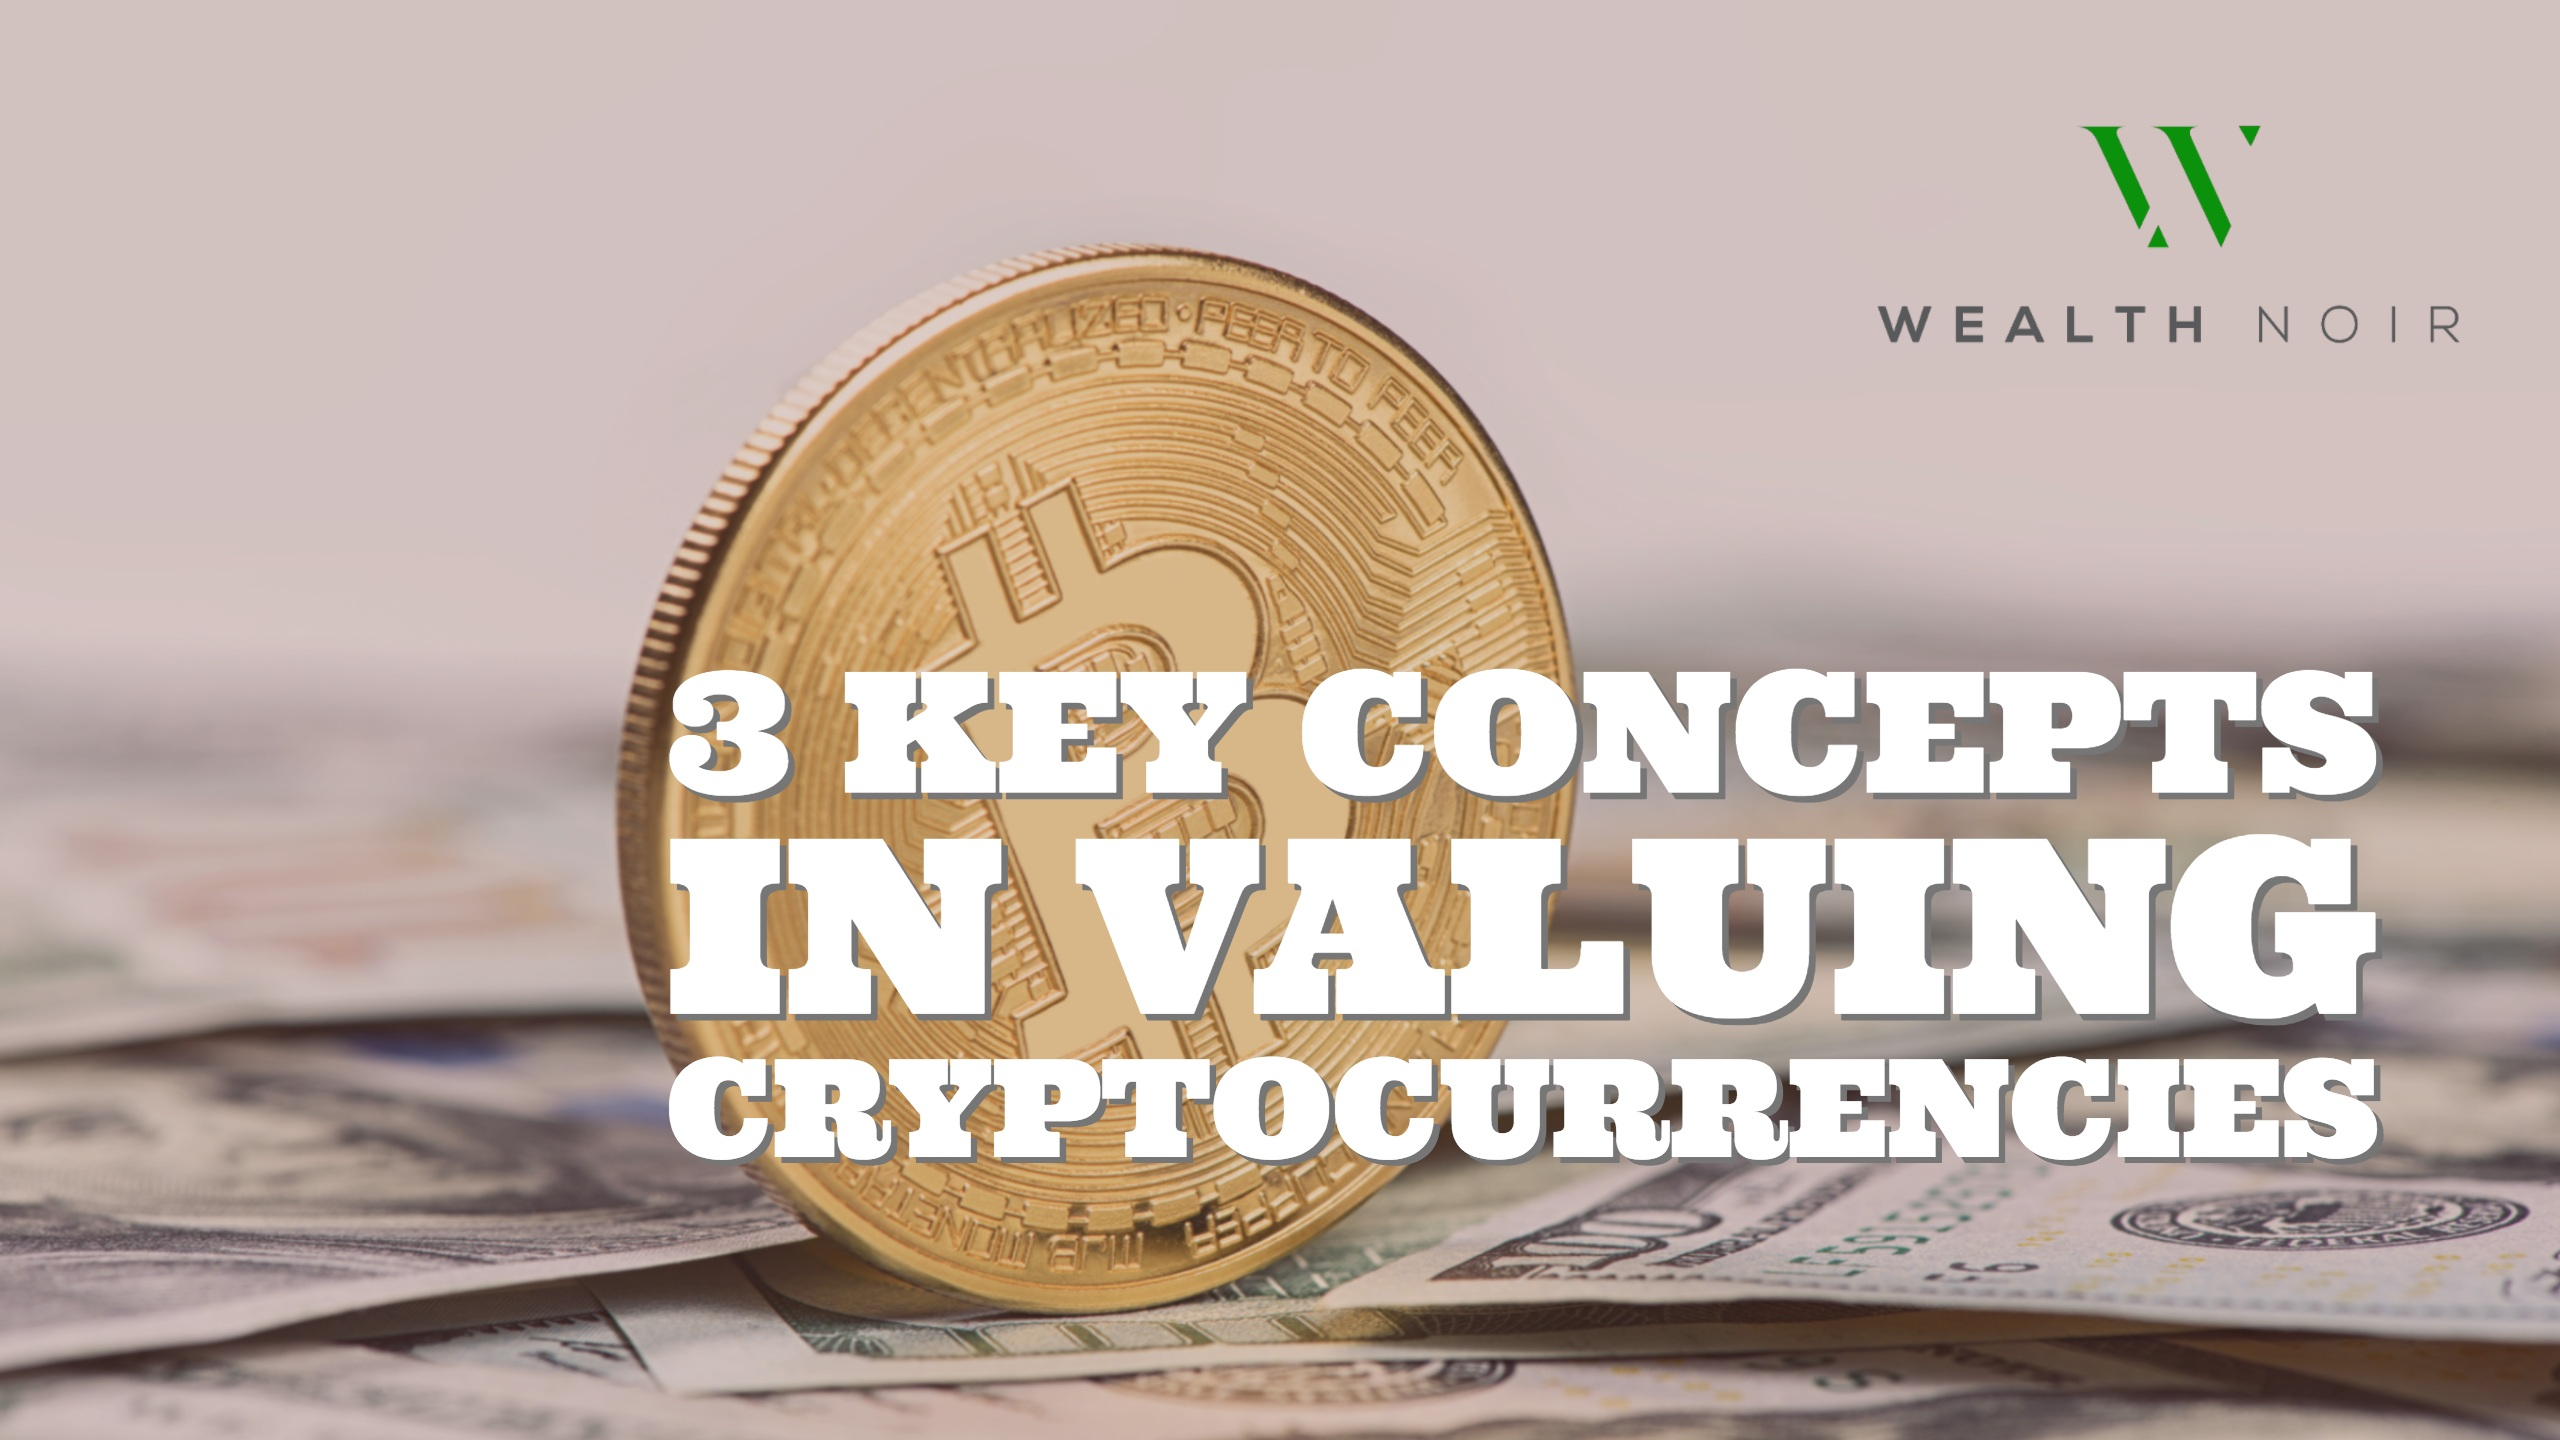 are cryptocurrencies mainly used by the wealthy